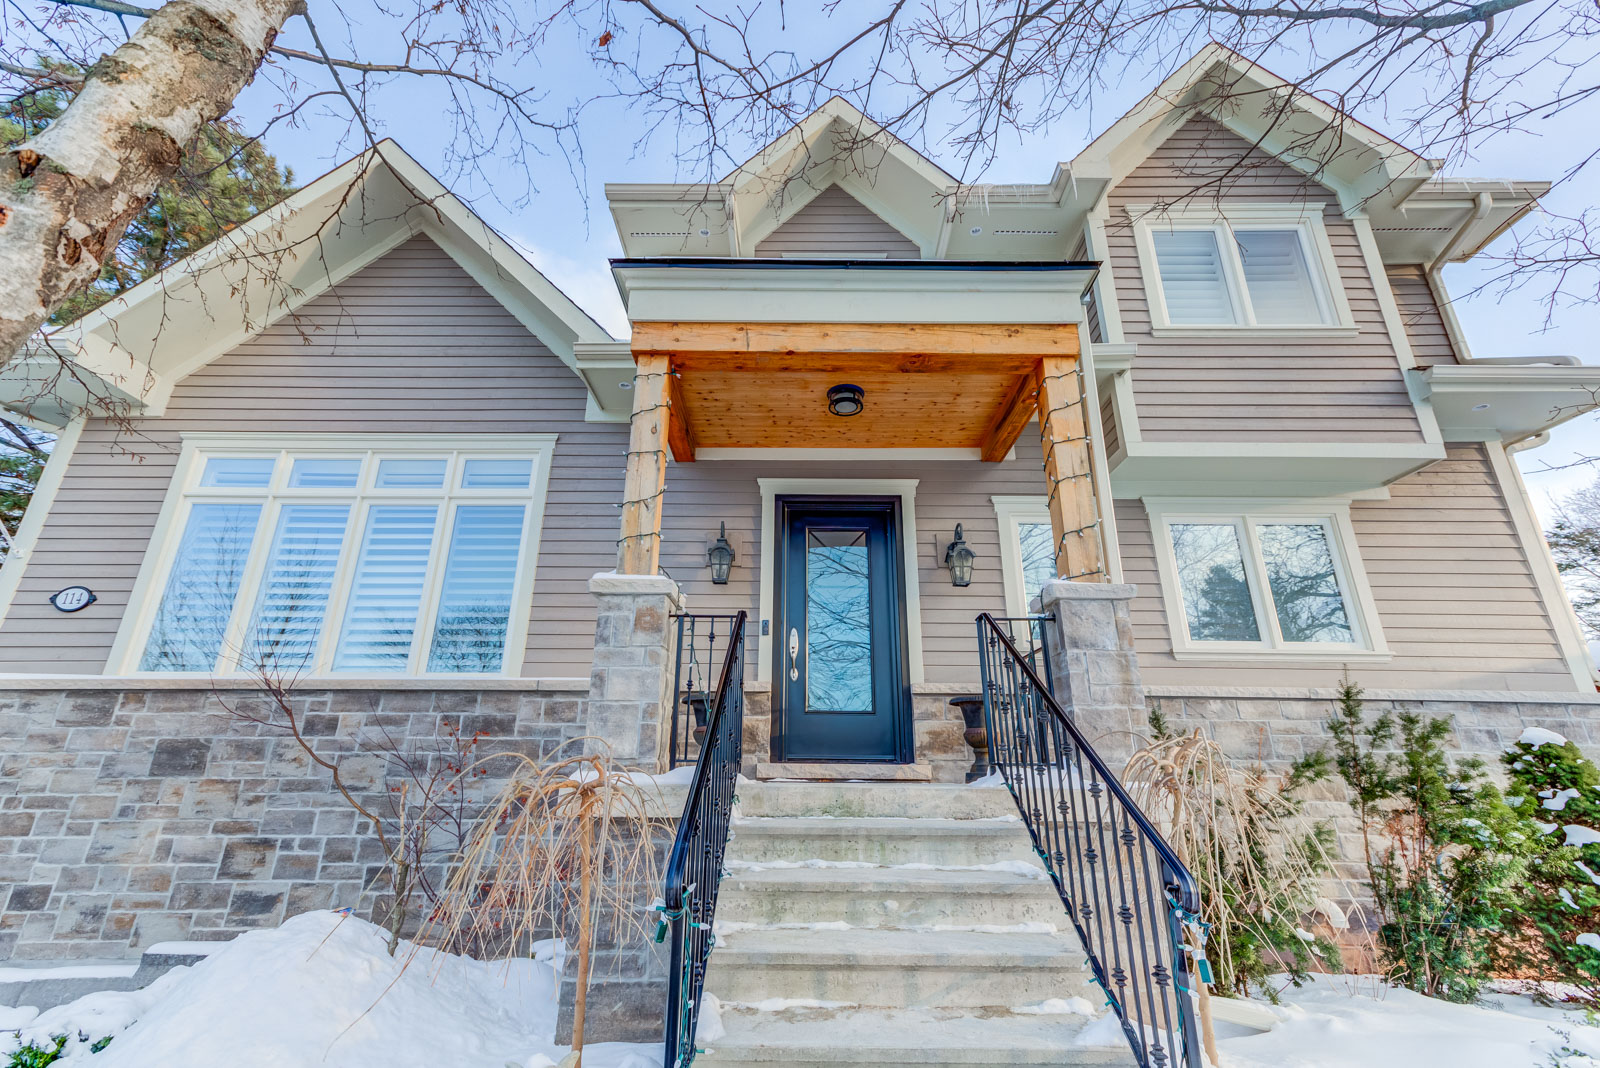 """$1,579,000 - Custom-built """"Bungaloft"""" home located in the family-friendly neighbourhood of College Park on huge oversized private lot."""